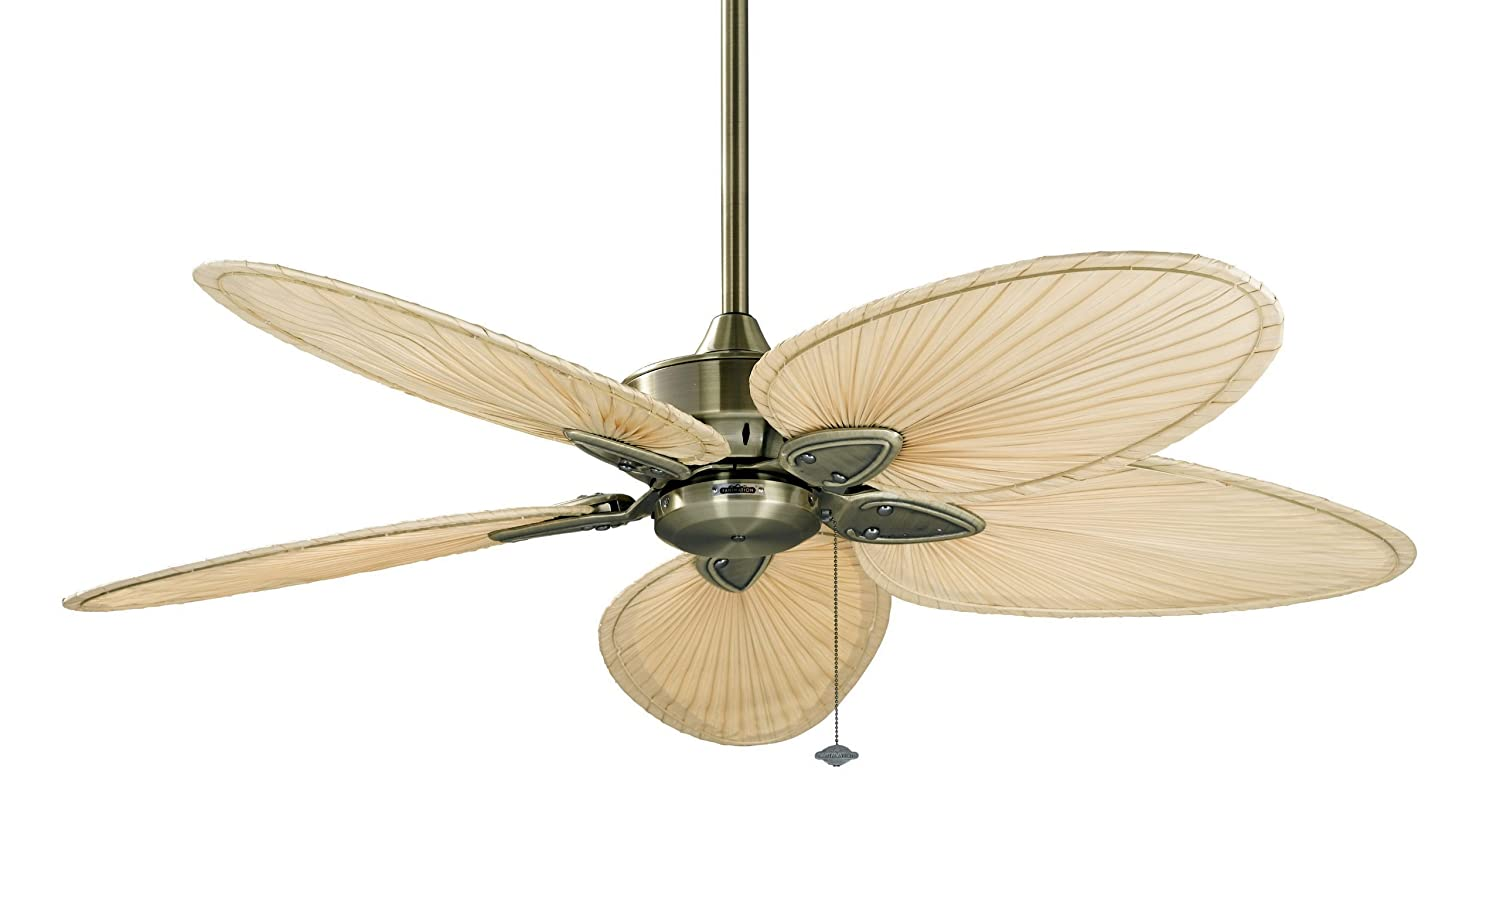 finish fan ceiling flow fans pin white gloss moderninteriors bamboo ceilings blades modernfancompany contemporaryceilingfan